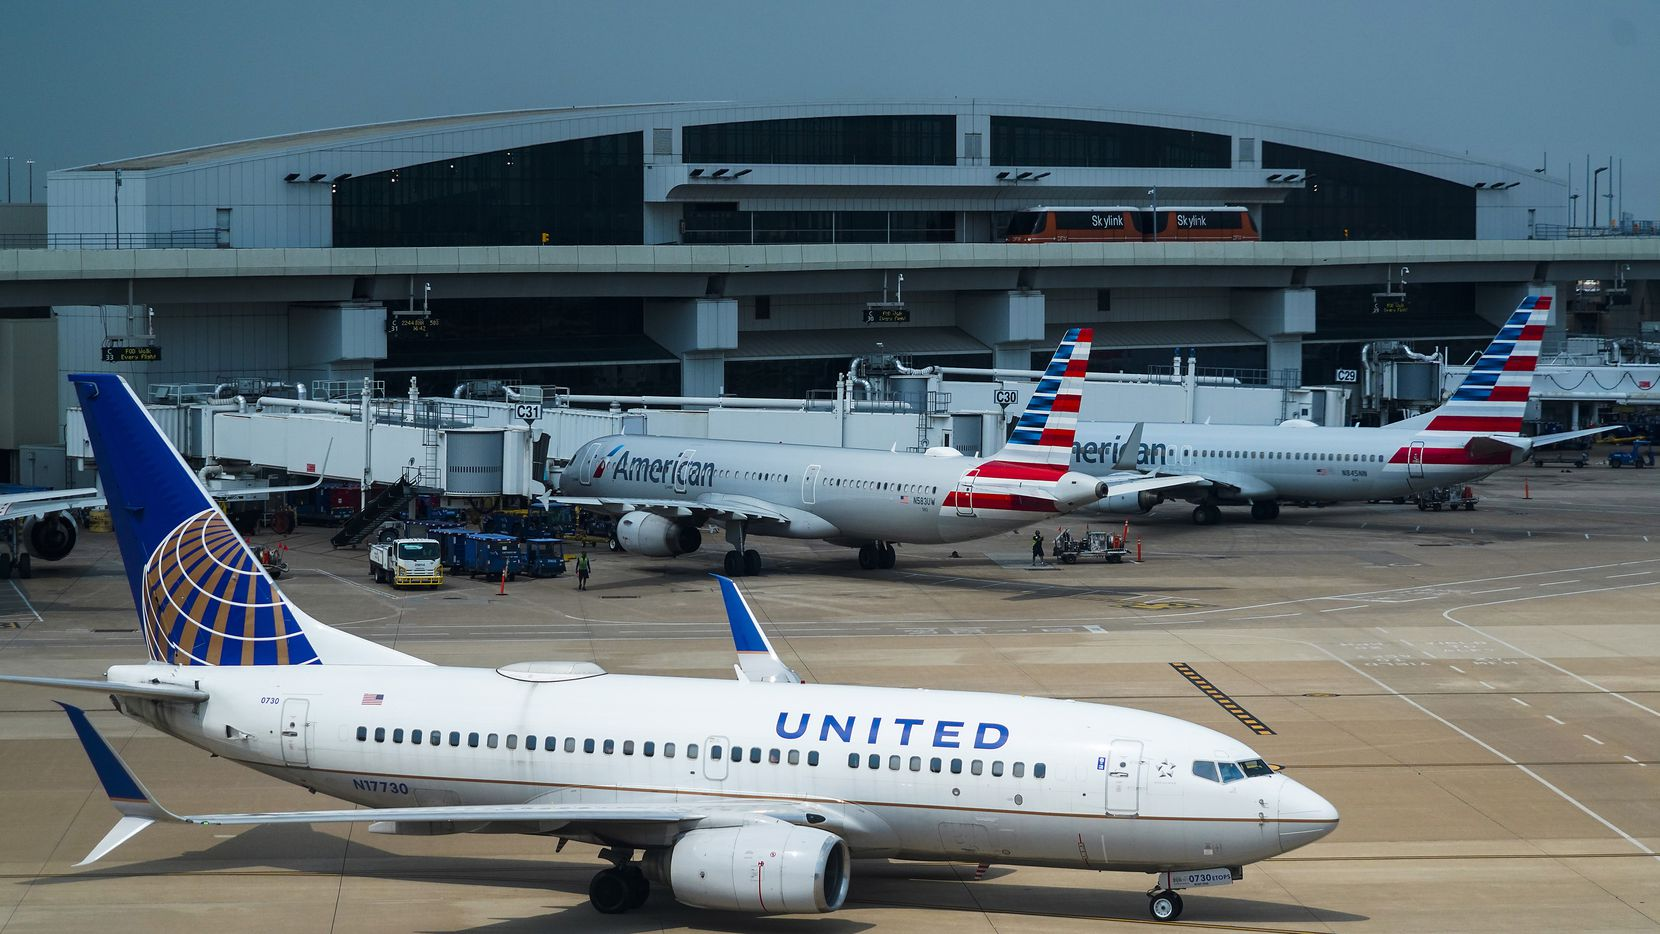 A United Airlines plane pushes away from a gate at Terminal E as American Airlines planes are seen at Terminal C on Sept. 8 at DFW Airport.